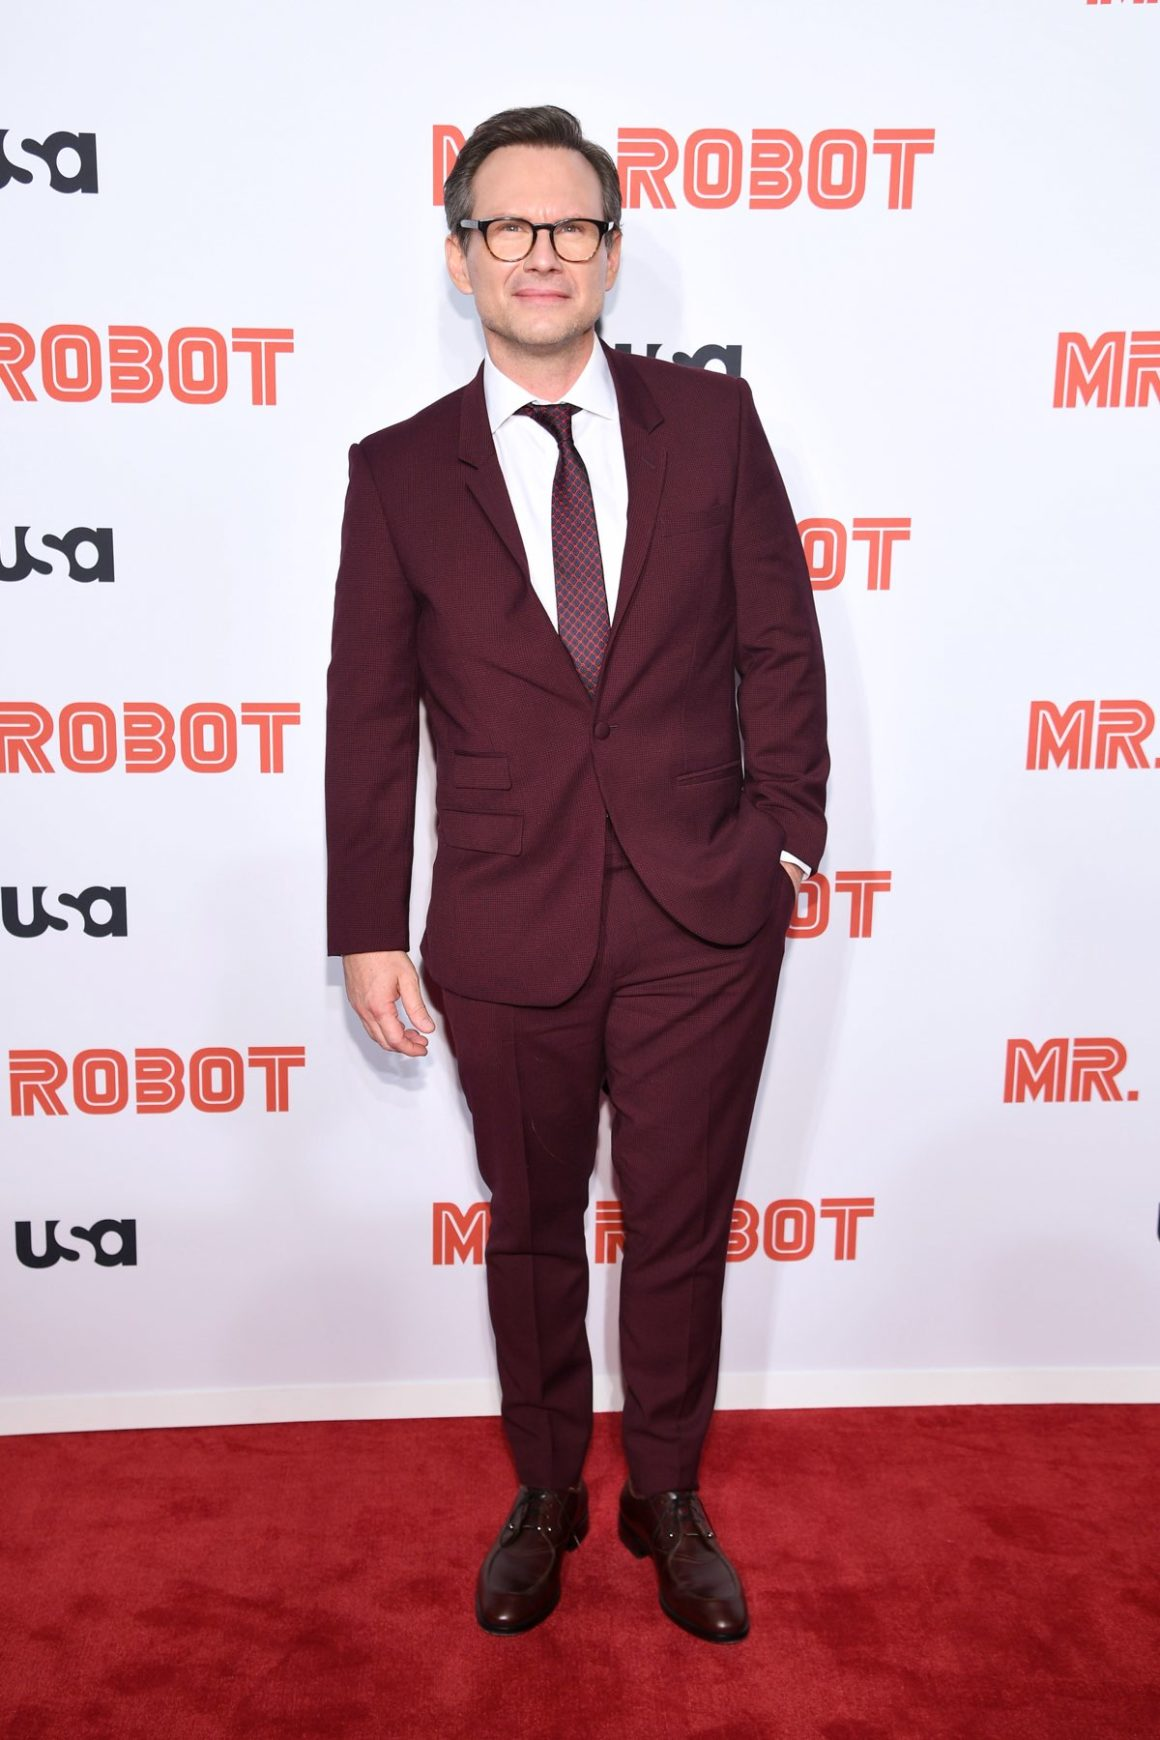 """Mr. Robot"" Season 4 Premiere"